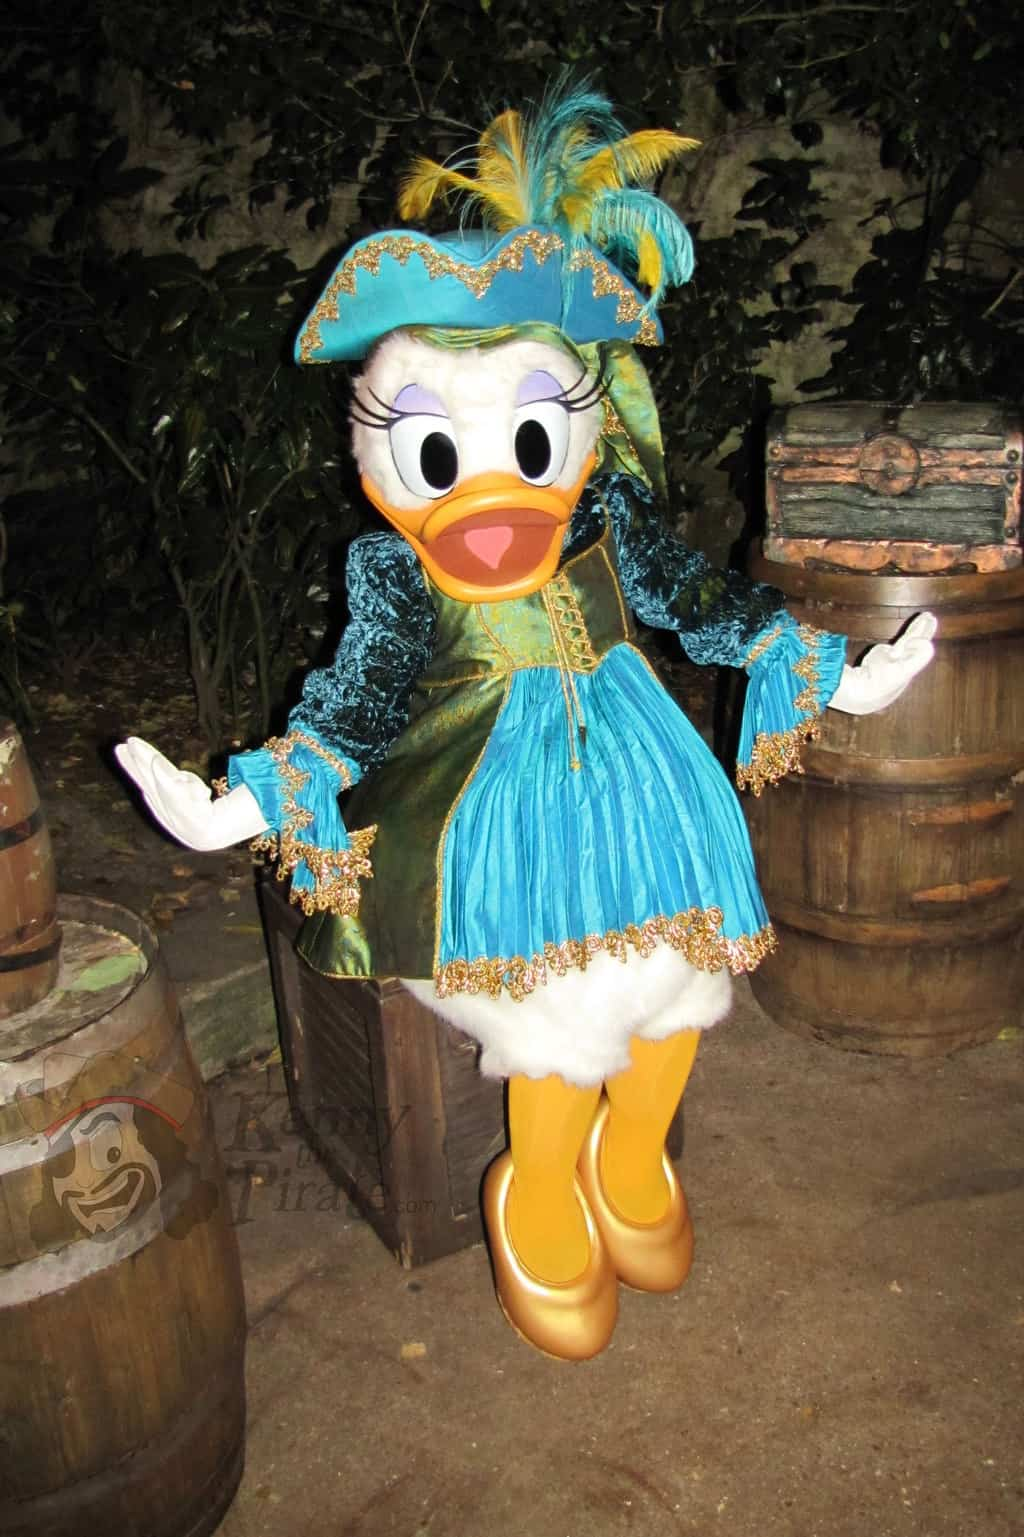 Daisy Duck at Disneyland Paris Halloween Party - KennythePirate.com